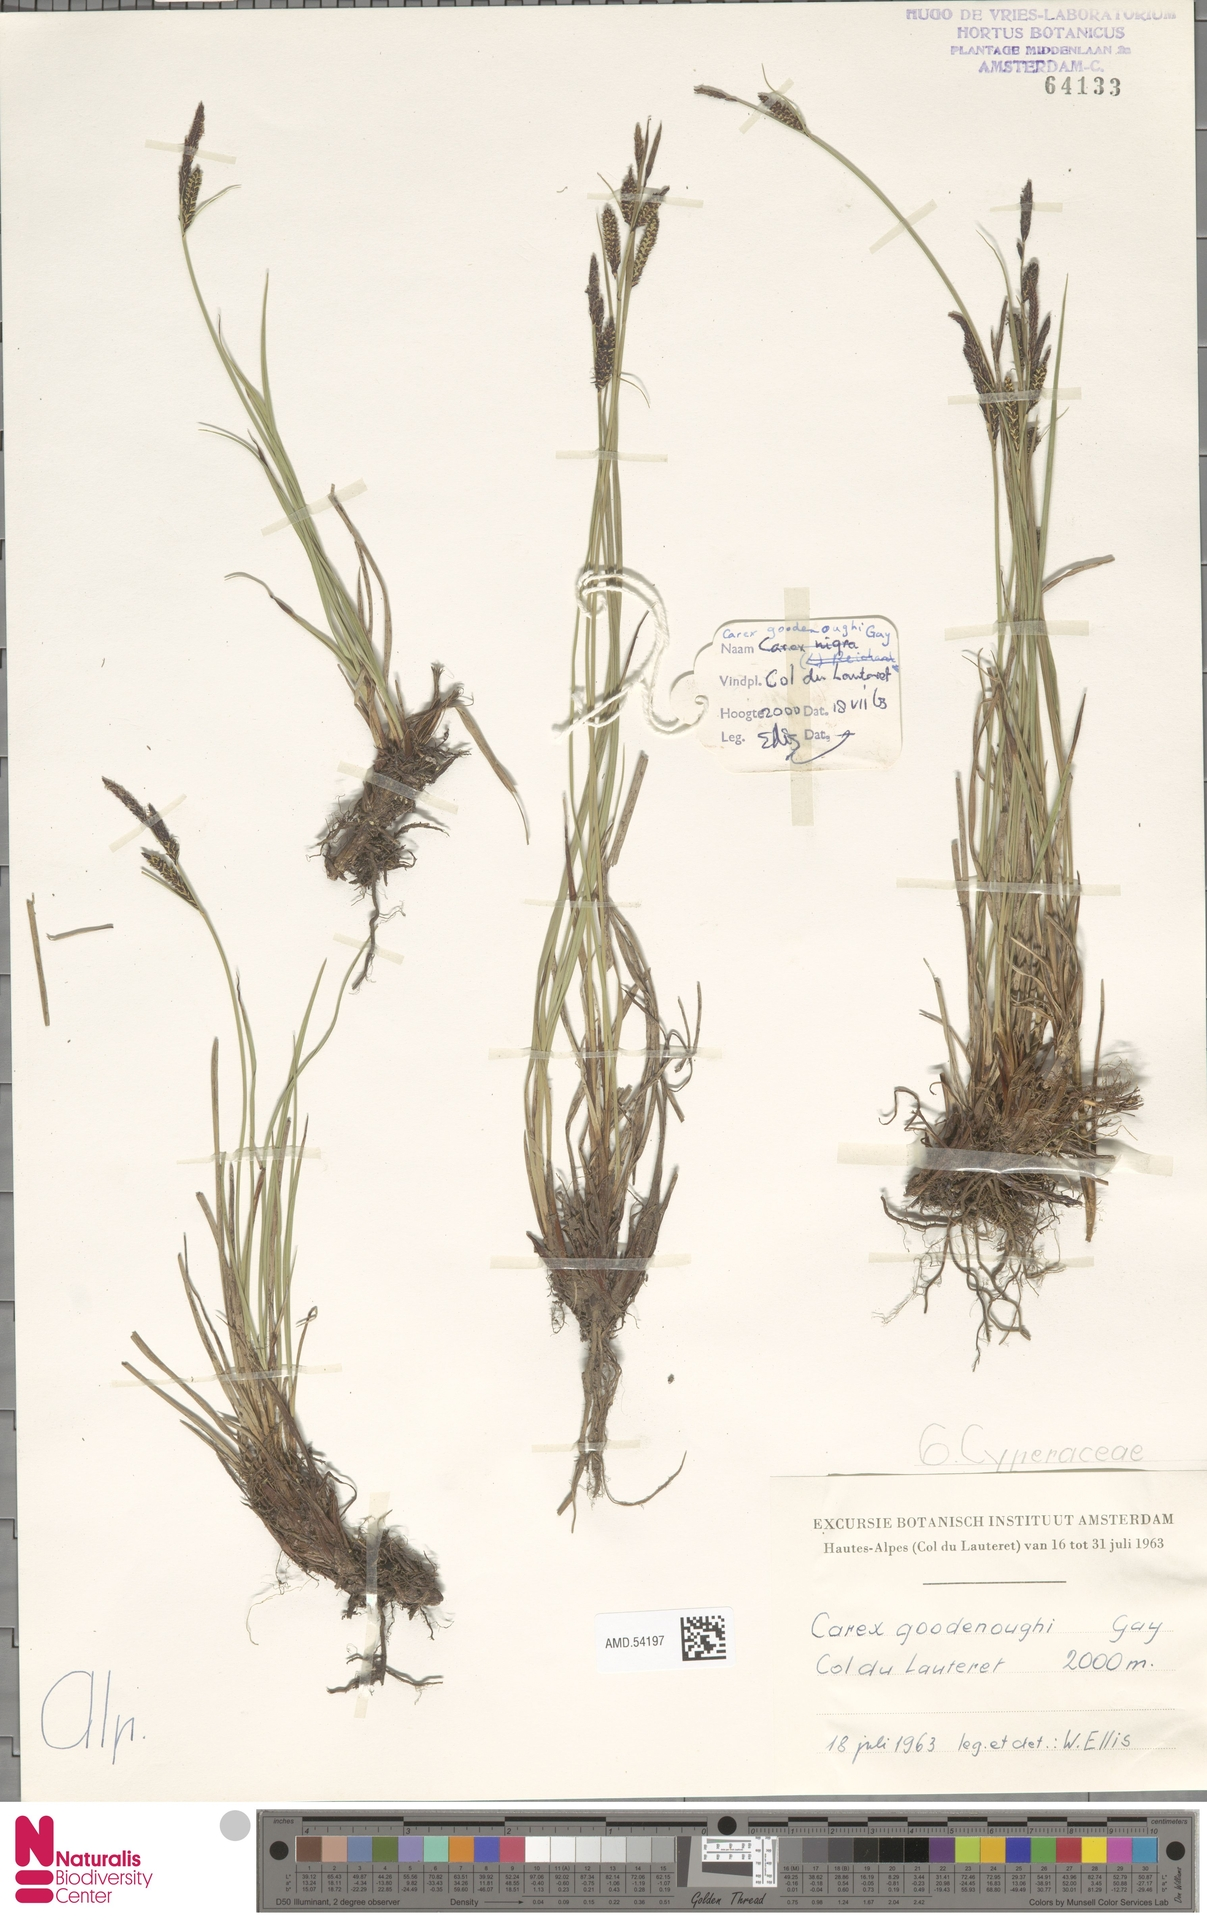 AMD.54197 | Carex goodenoughii Gay